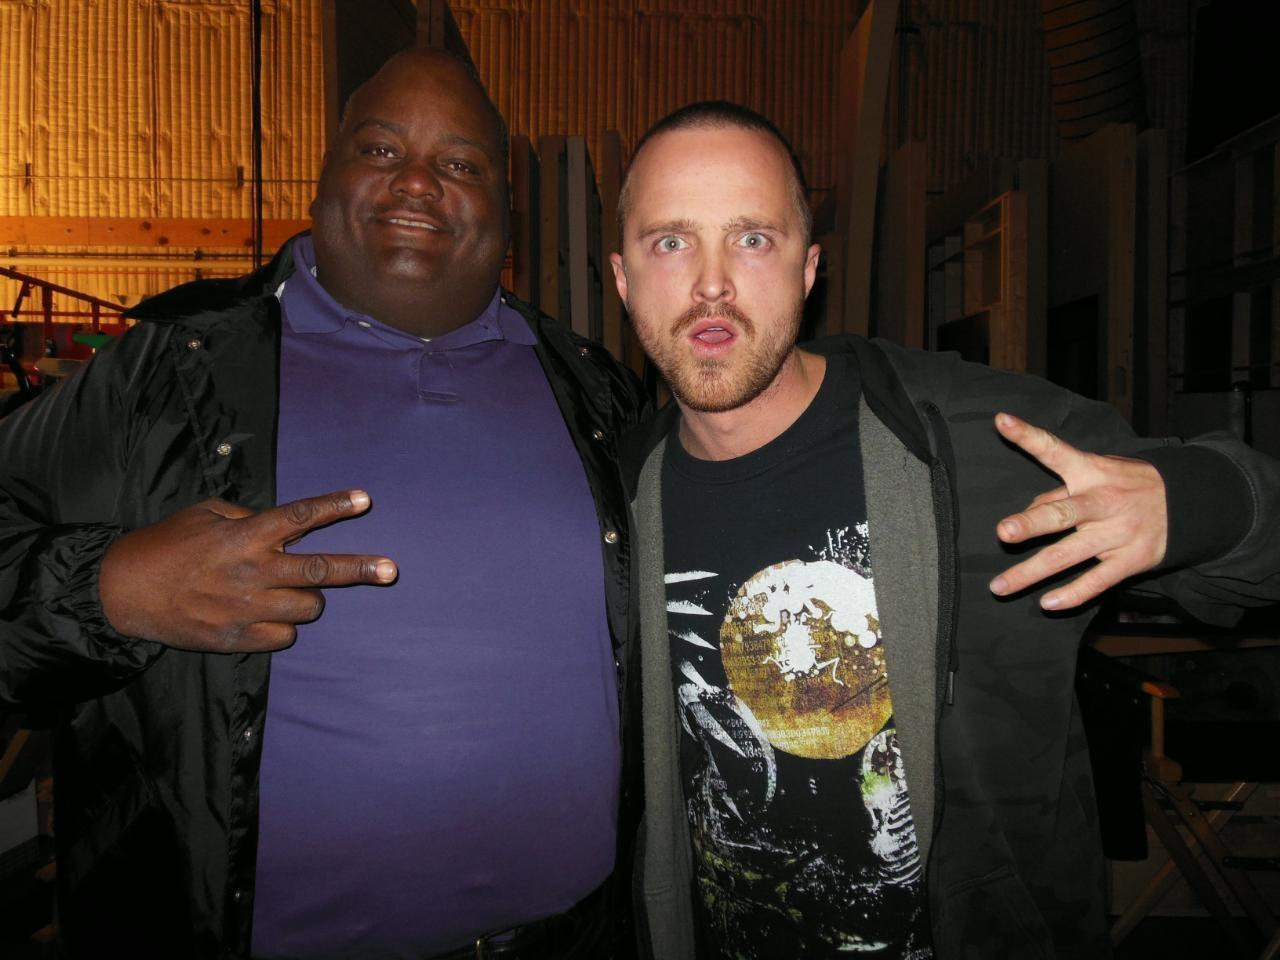 """""""@Lavellthacomic: Aaron Paul from breaking bad an acting monster an honor to work with him http://t.co/heXW1U6G"""" Honor is all mine my friend"""